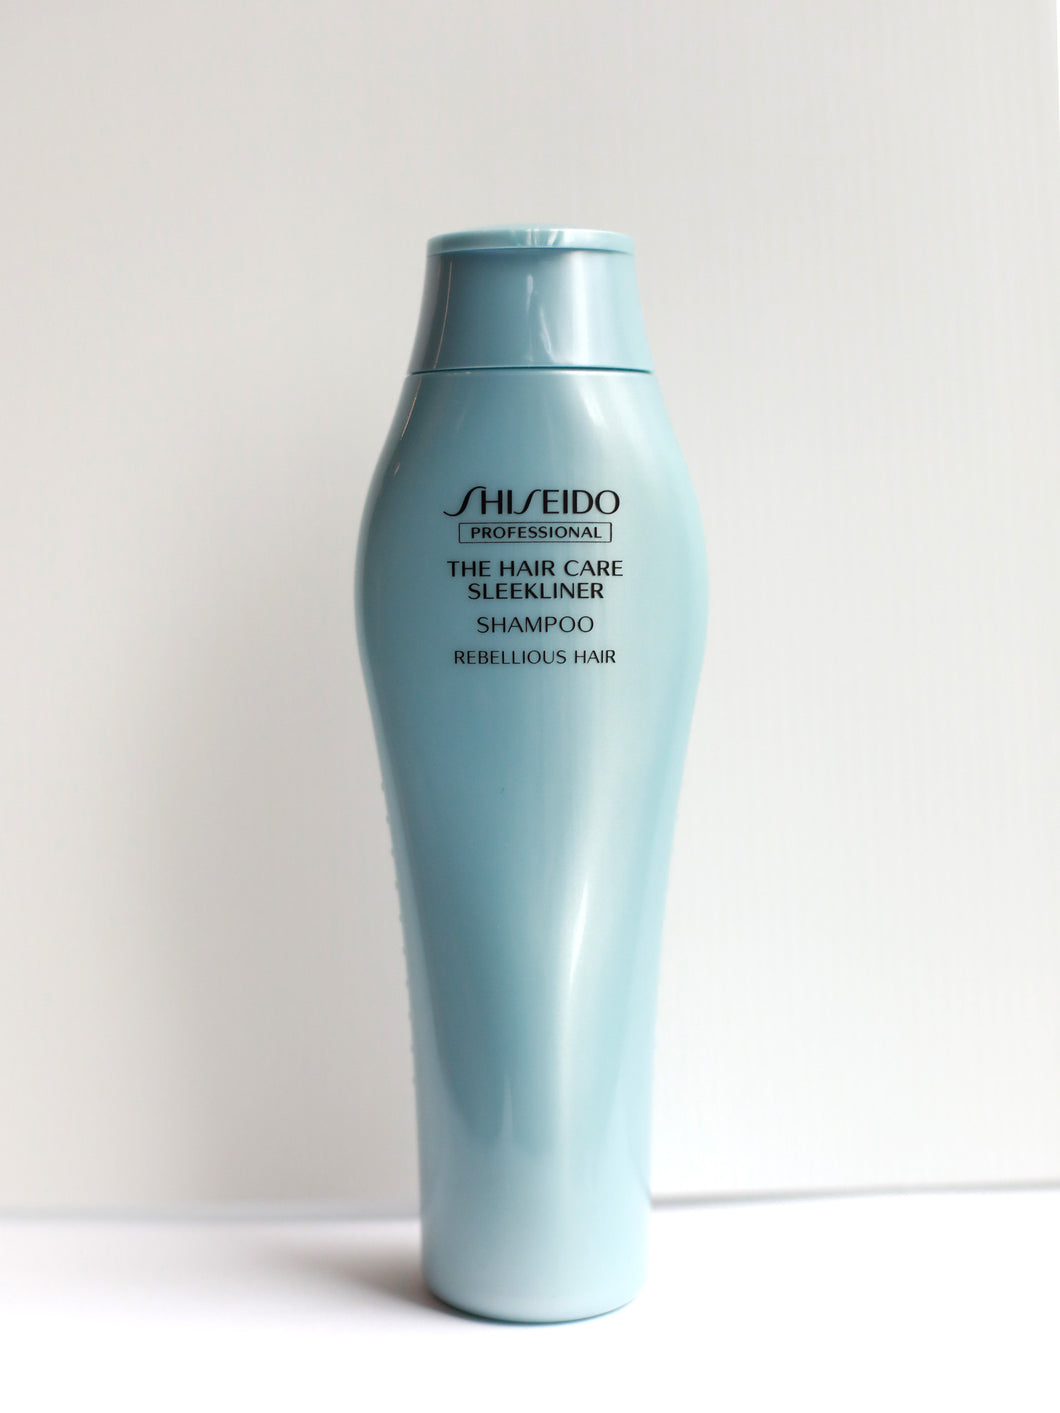 SHISEIDO THE HAIR CARE SLEEKLINER Shampoo for Rebellious Hair